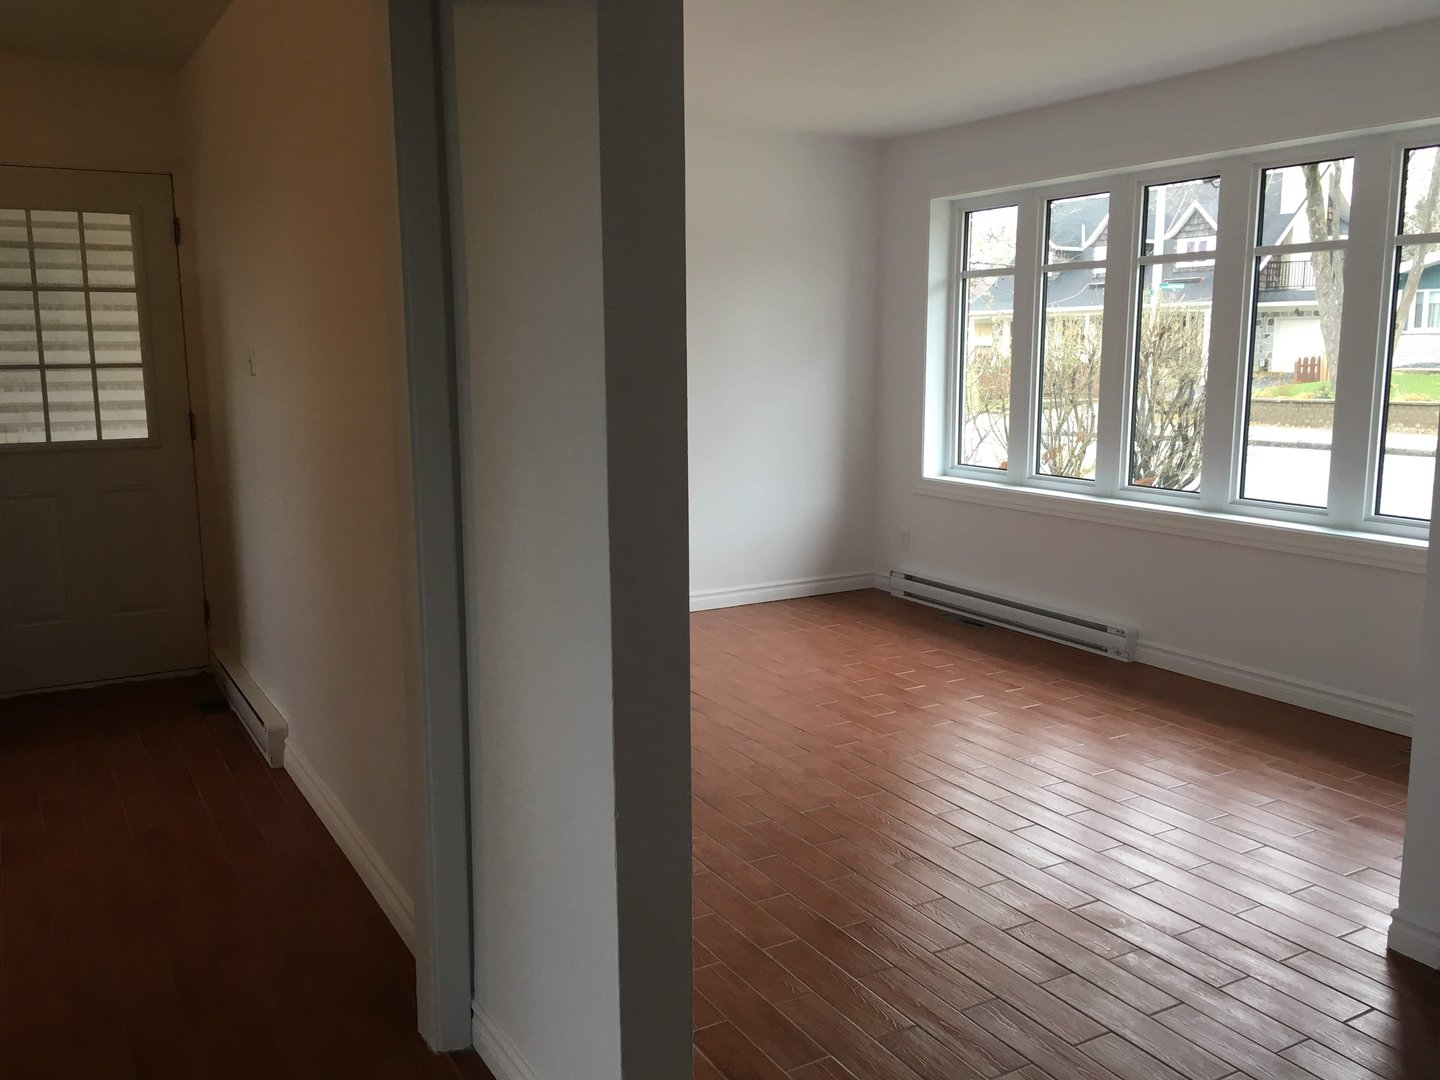 Apartment for rent at 2664 Chemin des Quatre-Bourgeois, Québec City, QC.